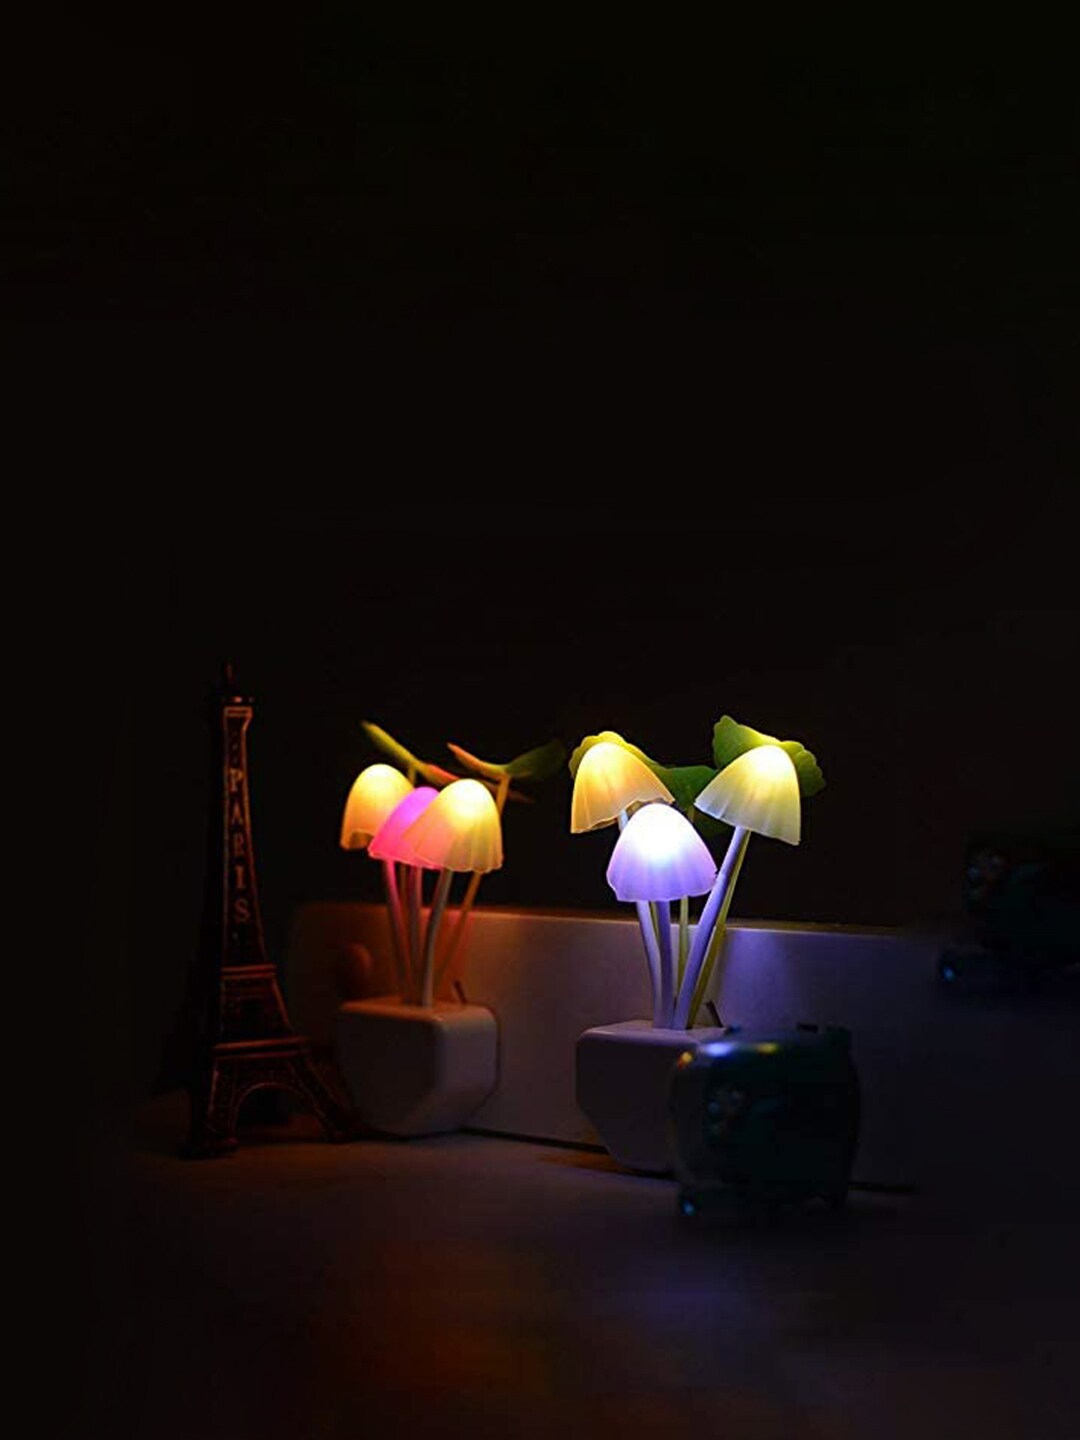 Archies Set Of 2 Green   Pink LED Mushroom Lights